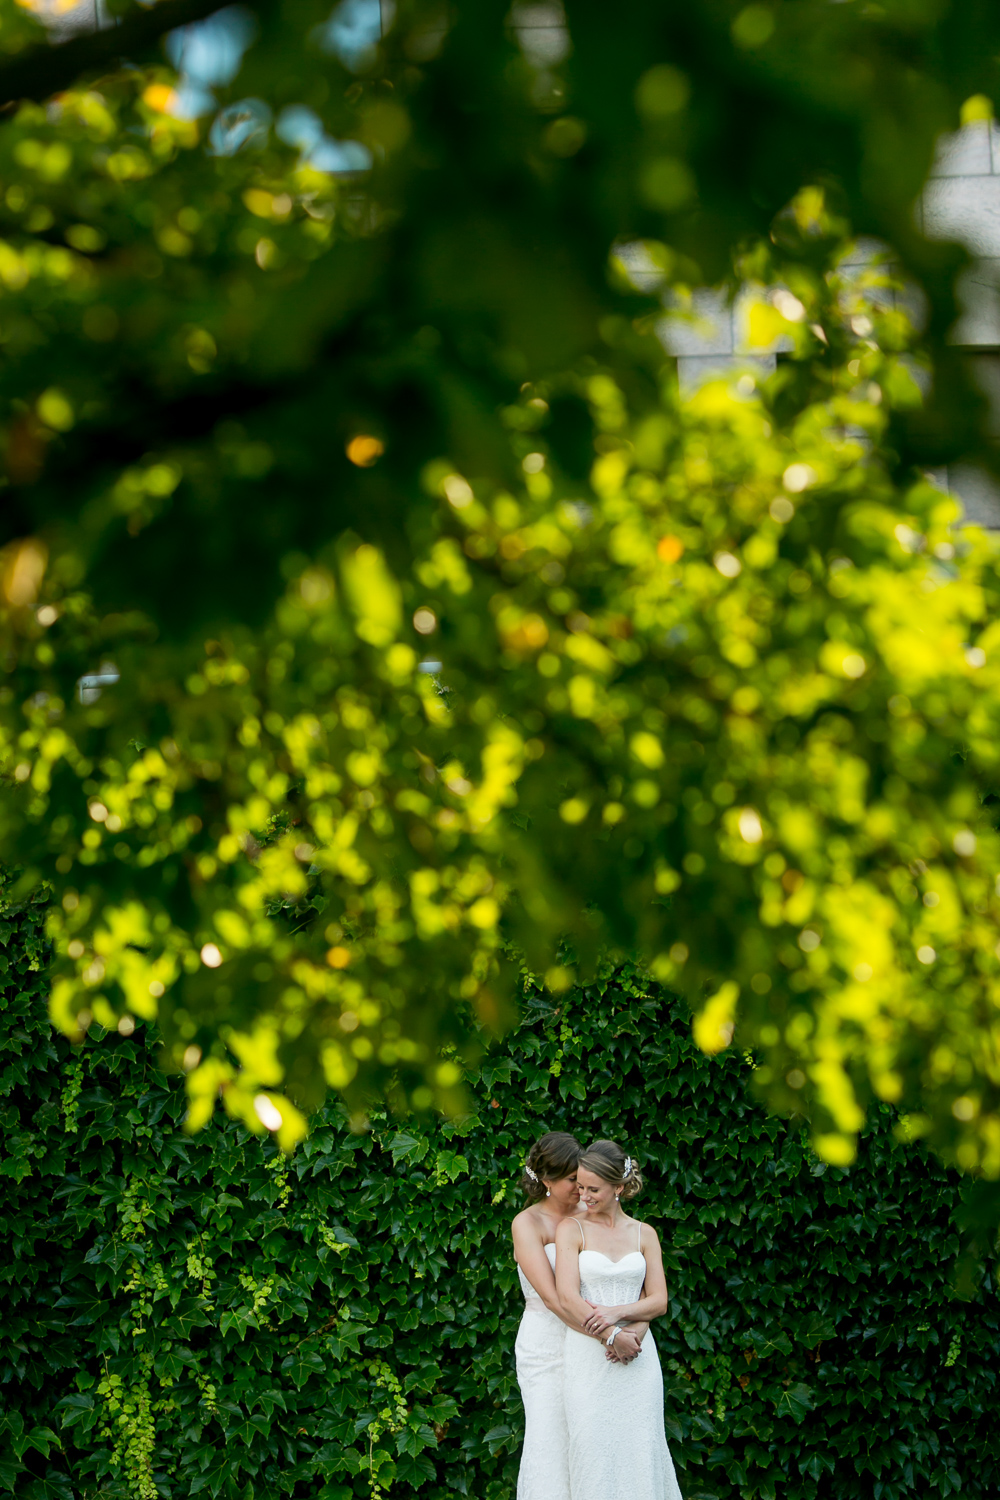 A portrait of the brides after their wedding ceremony at the Rockcliffe Pavilion